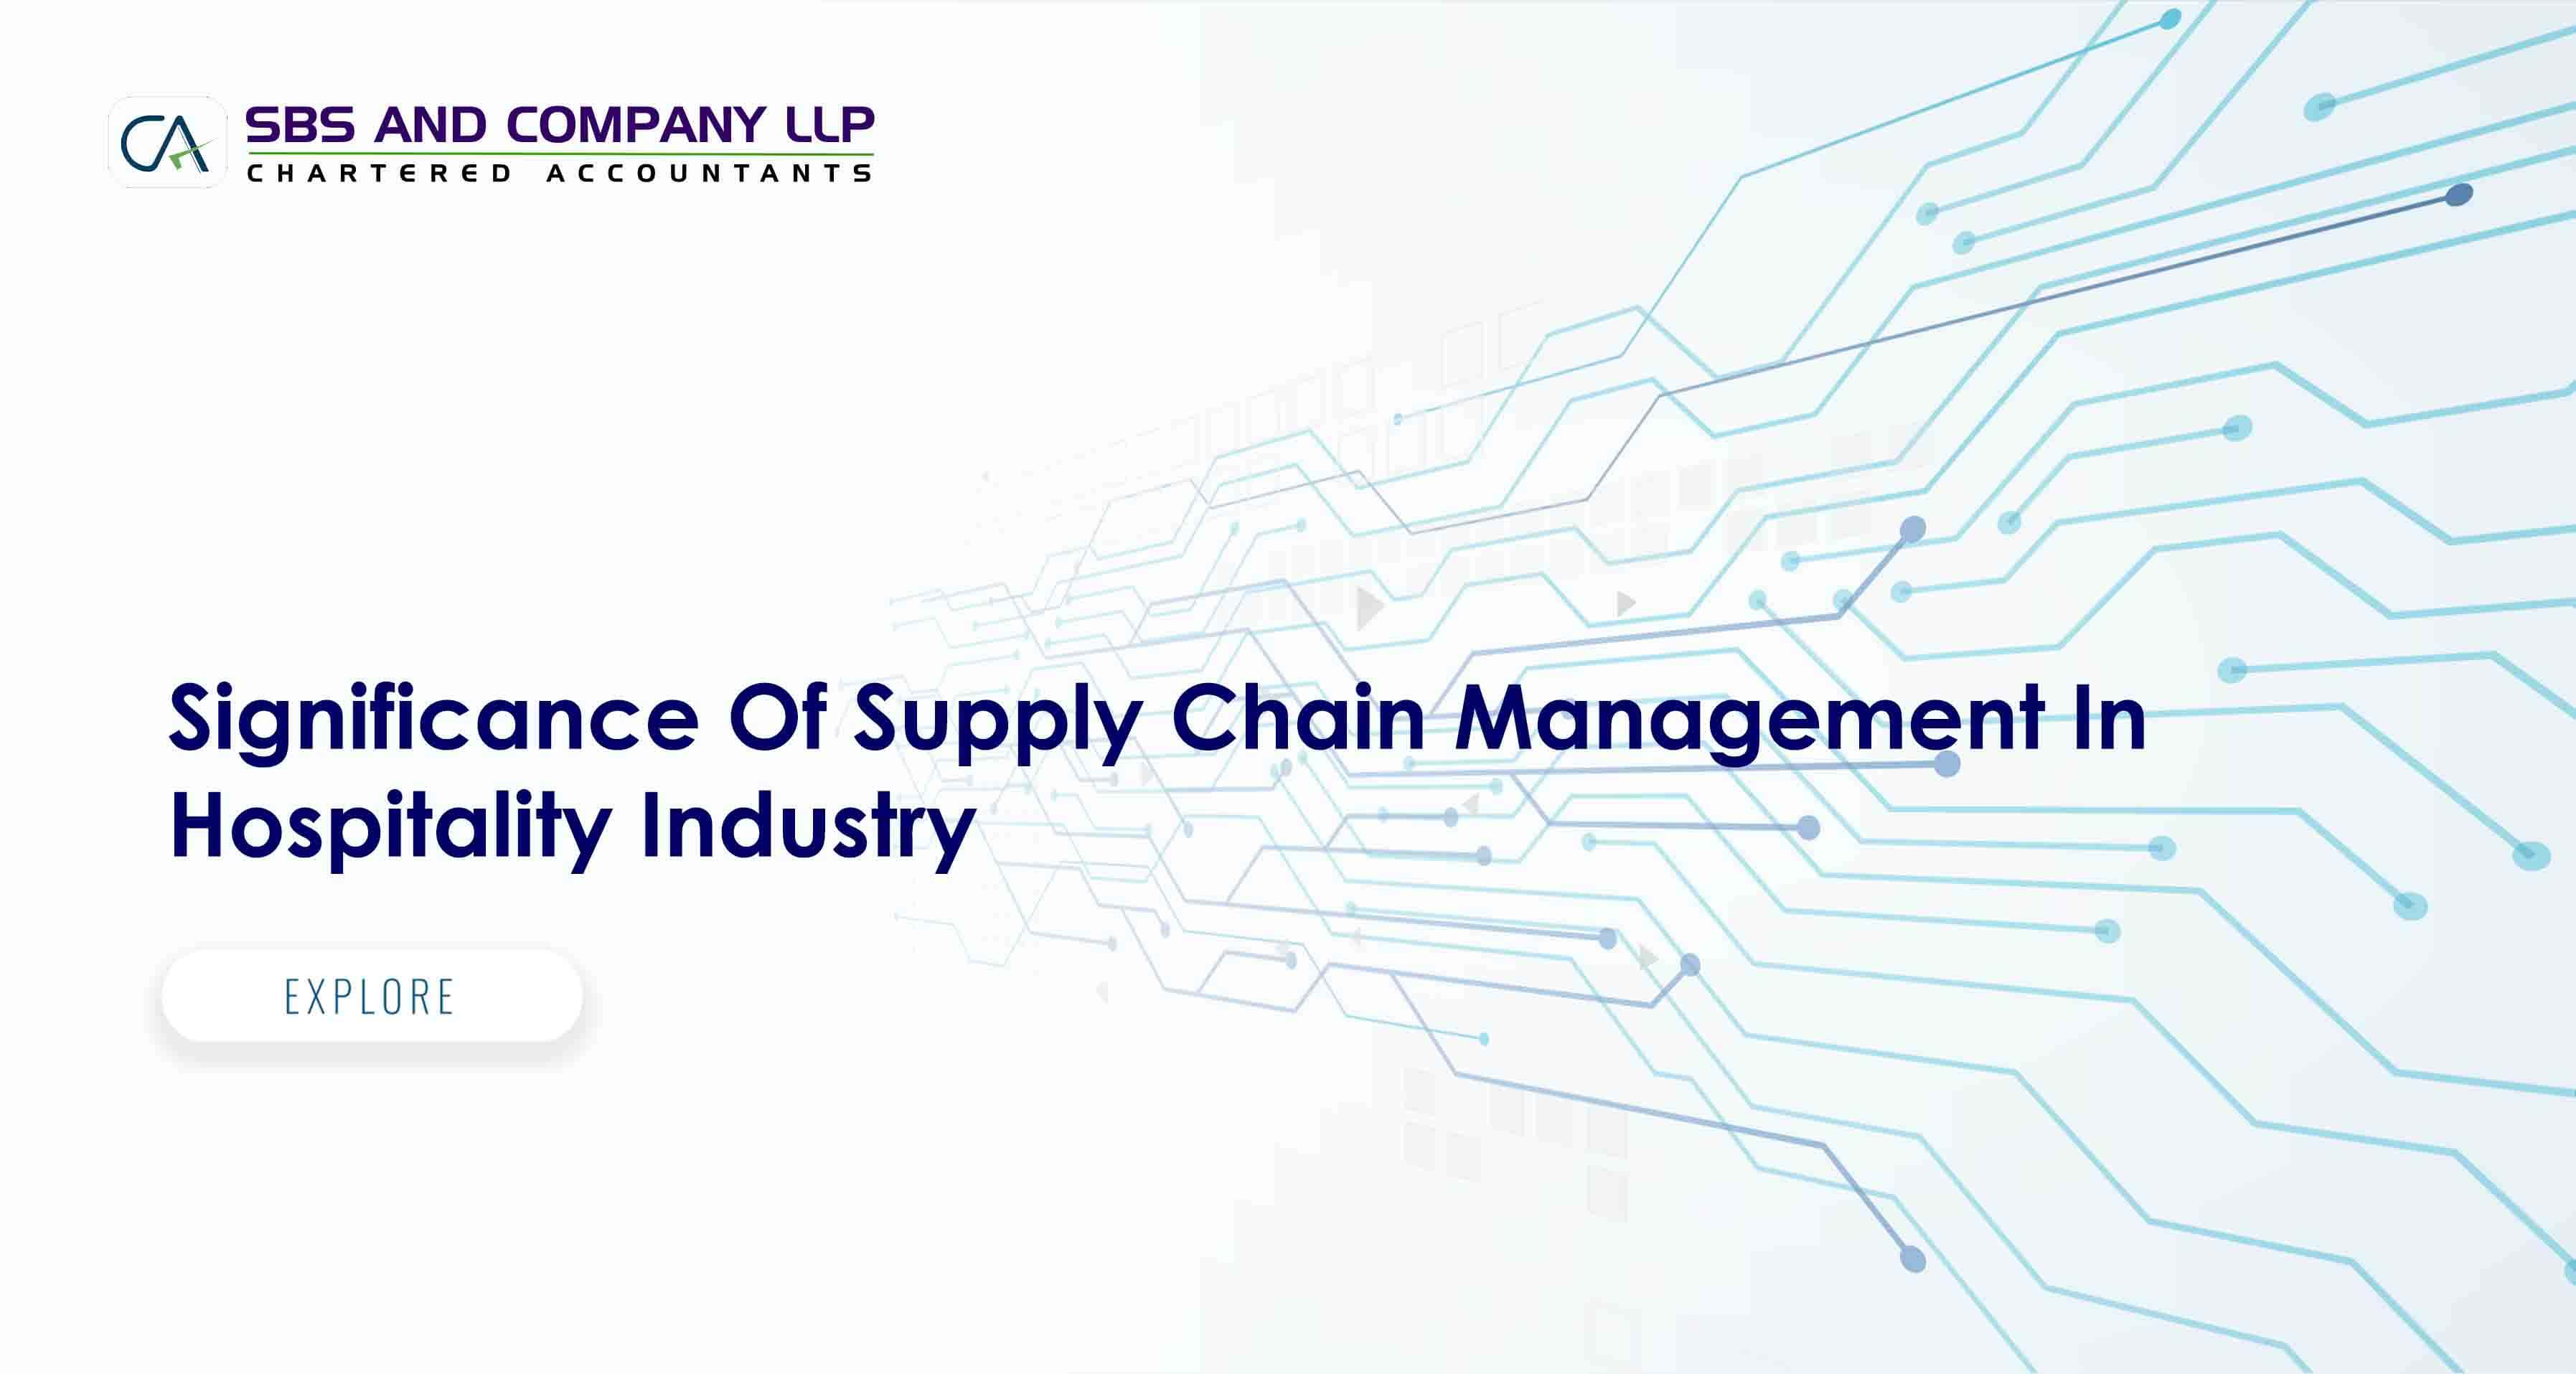 Supply Chain Management In Hospitality Industry